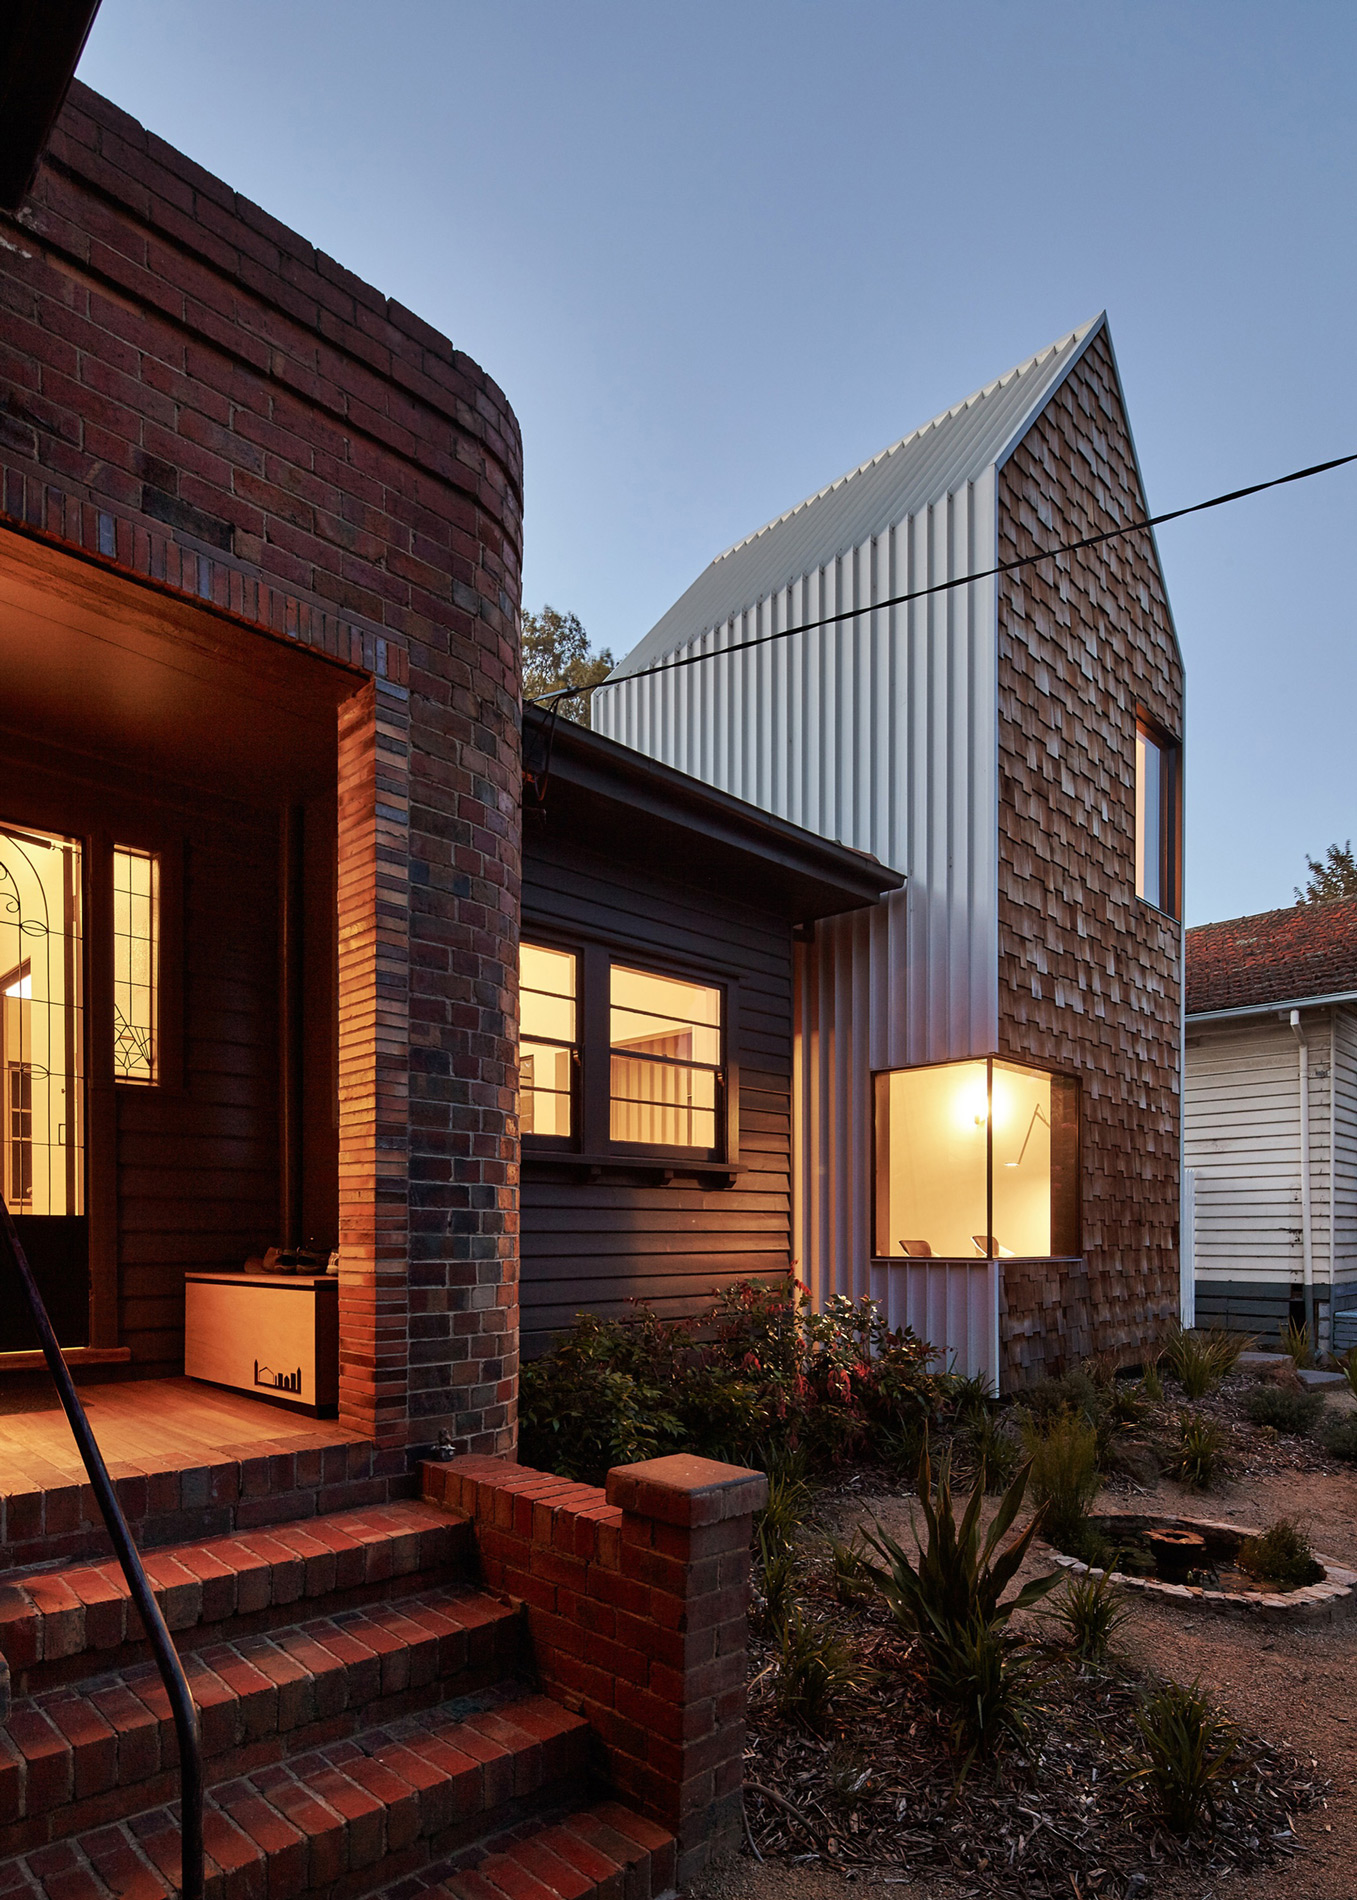 Tower House / Andrew Maynard Architects (21)